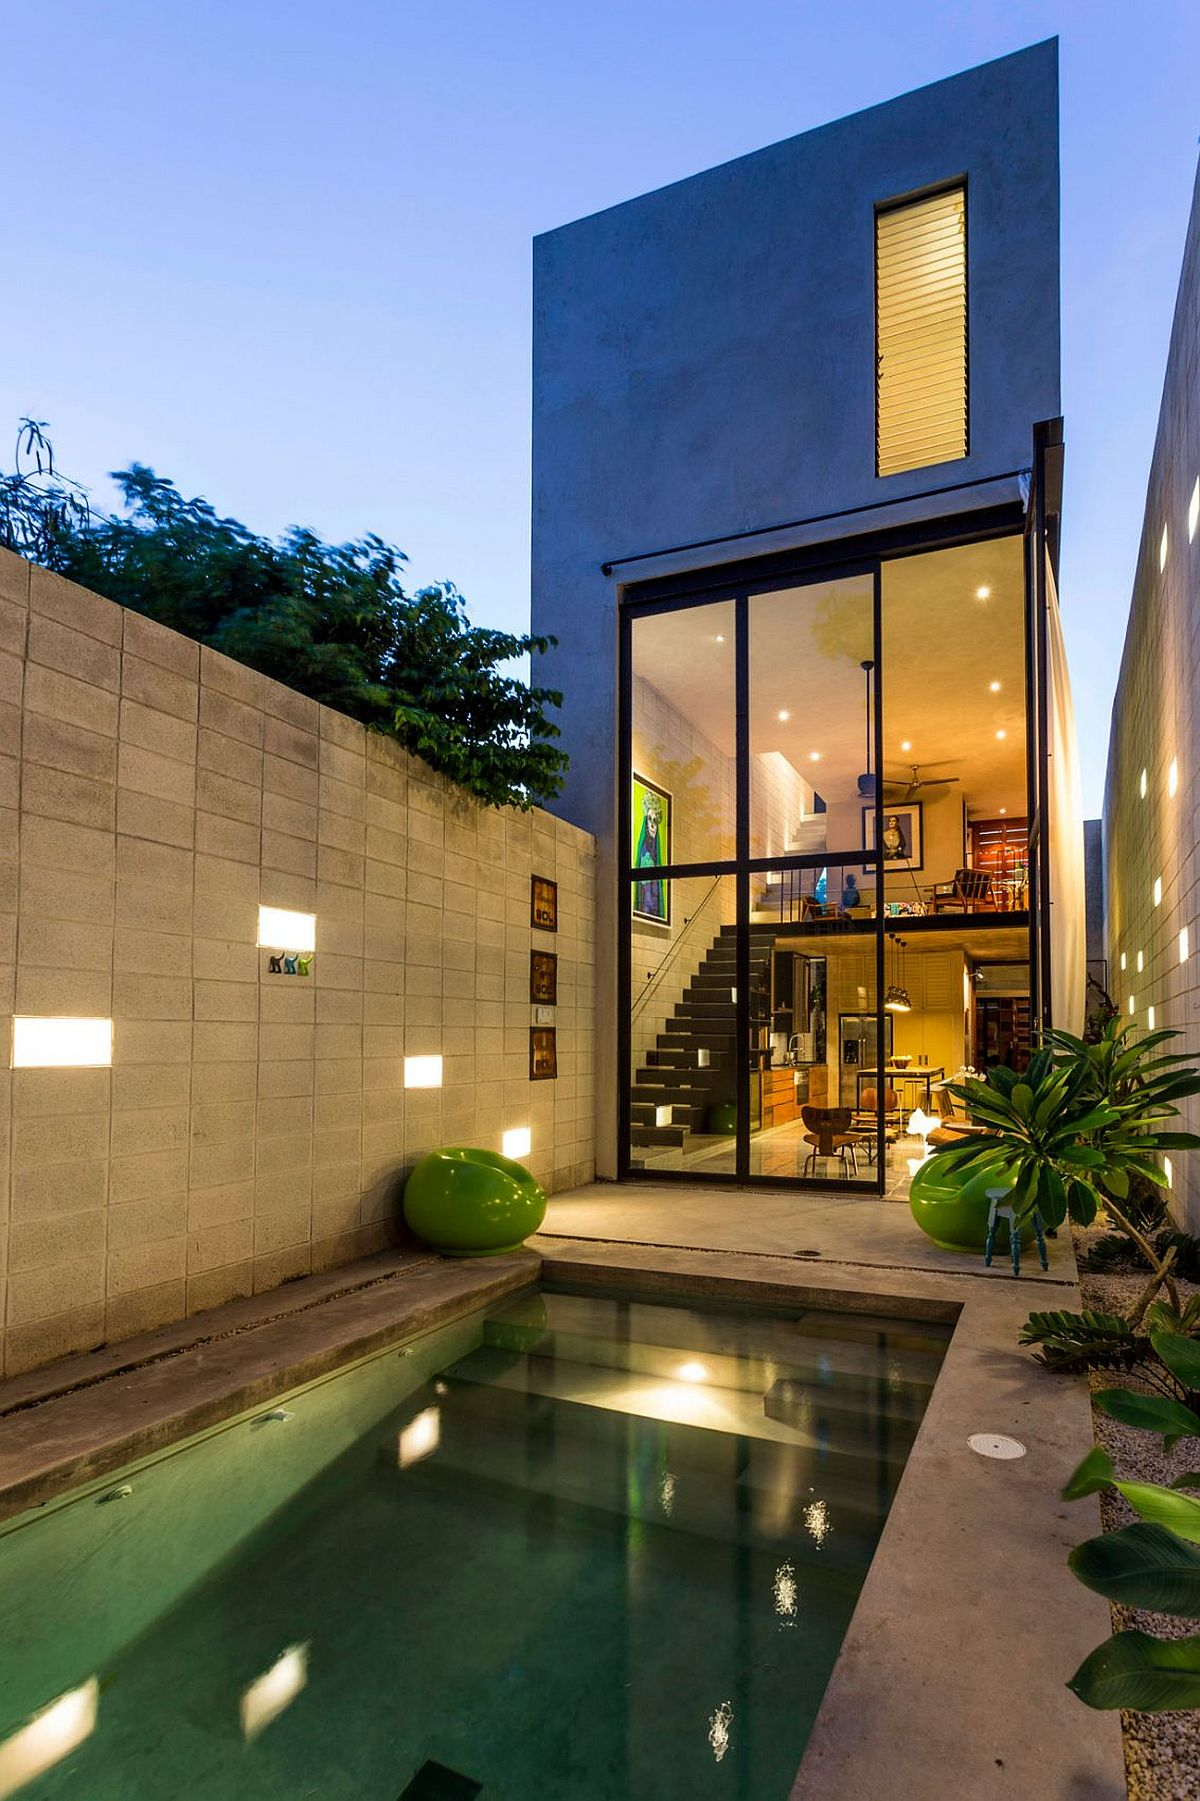 Exquisite modern residence in Merida, Mexico by Taller Estilo Arquitectura